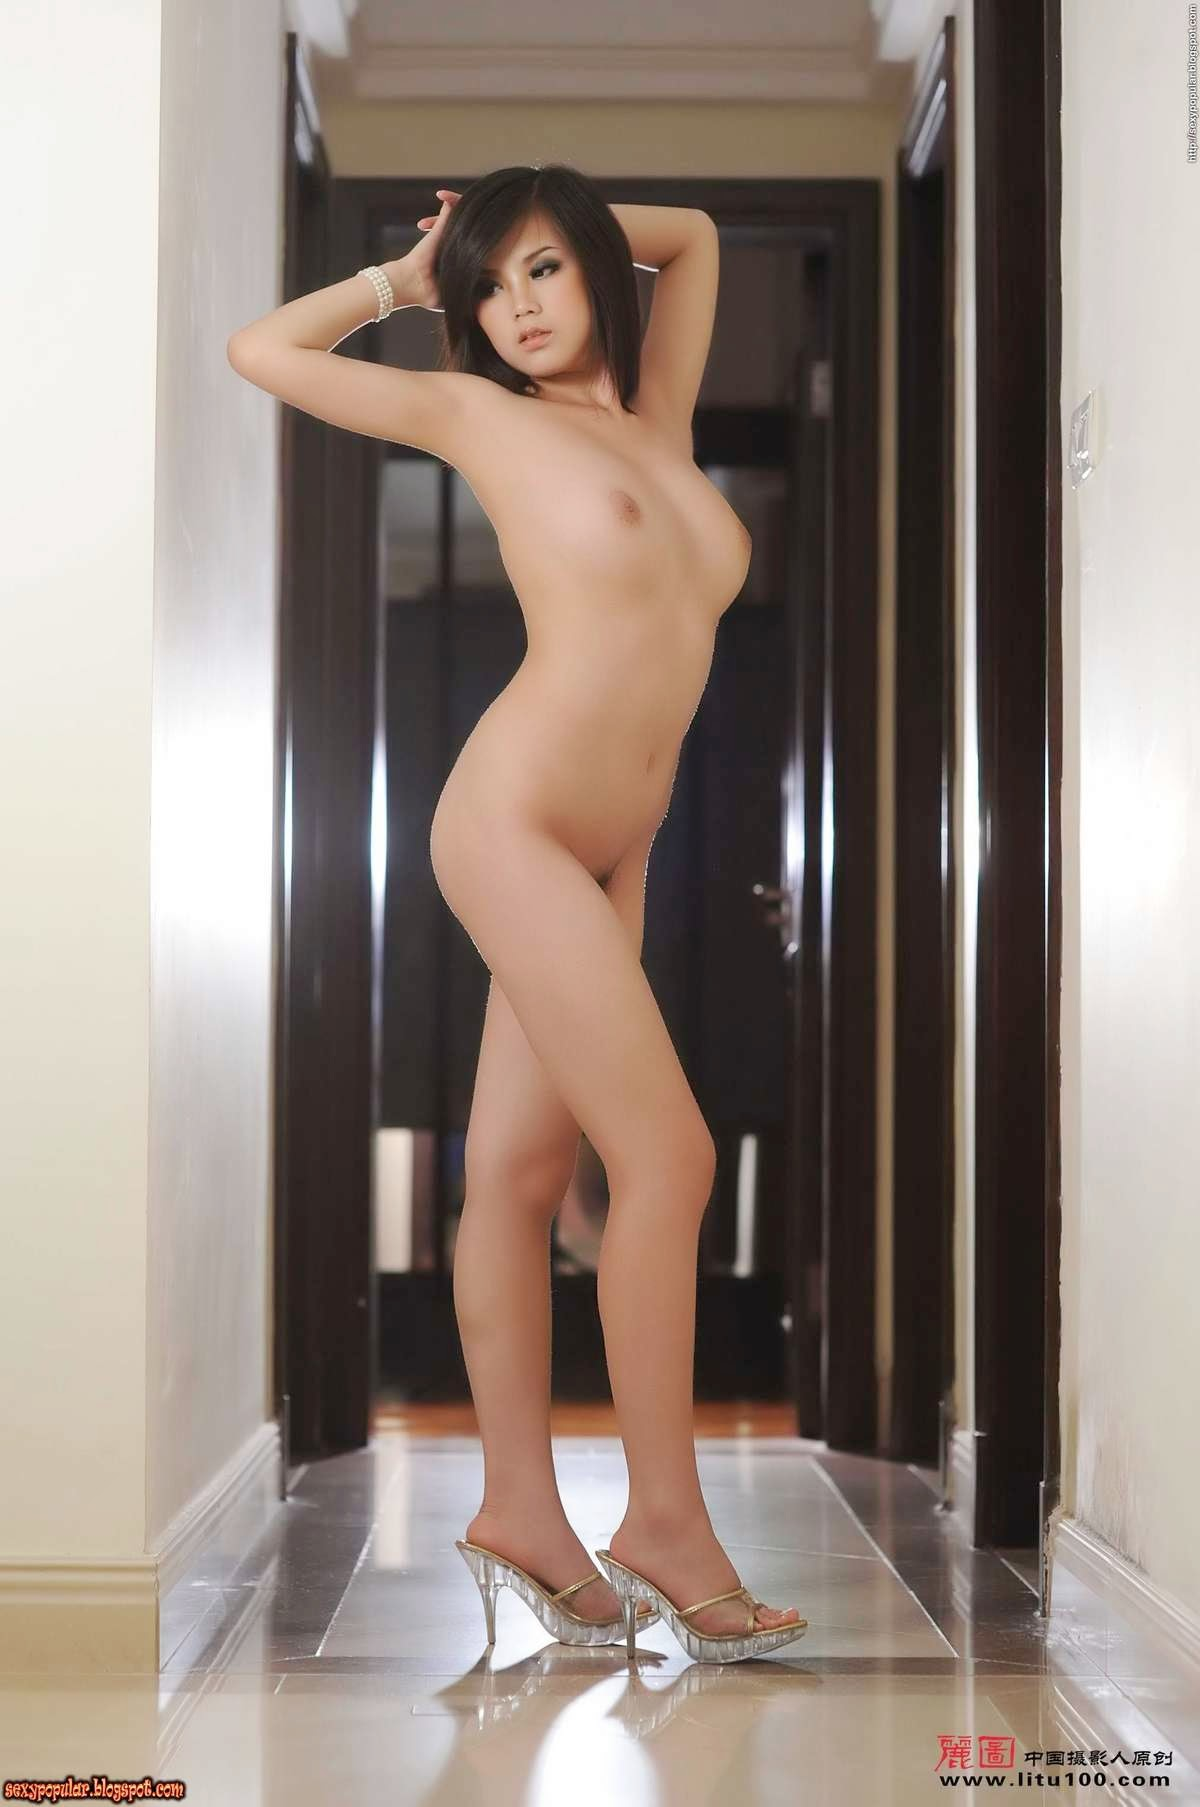 litu 100 archives: Chinese Nude Model Ke Xin 02 [Litu100] | 18+ gallery photos